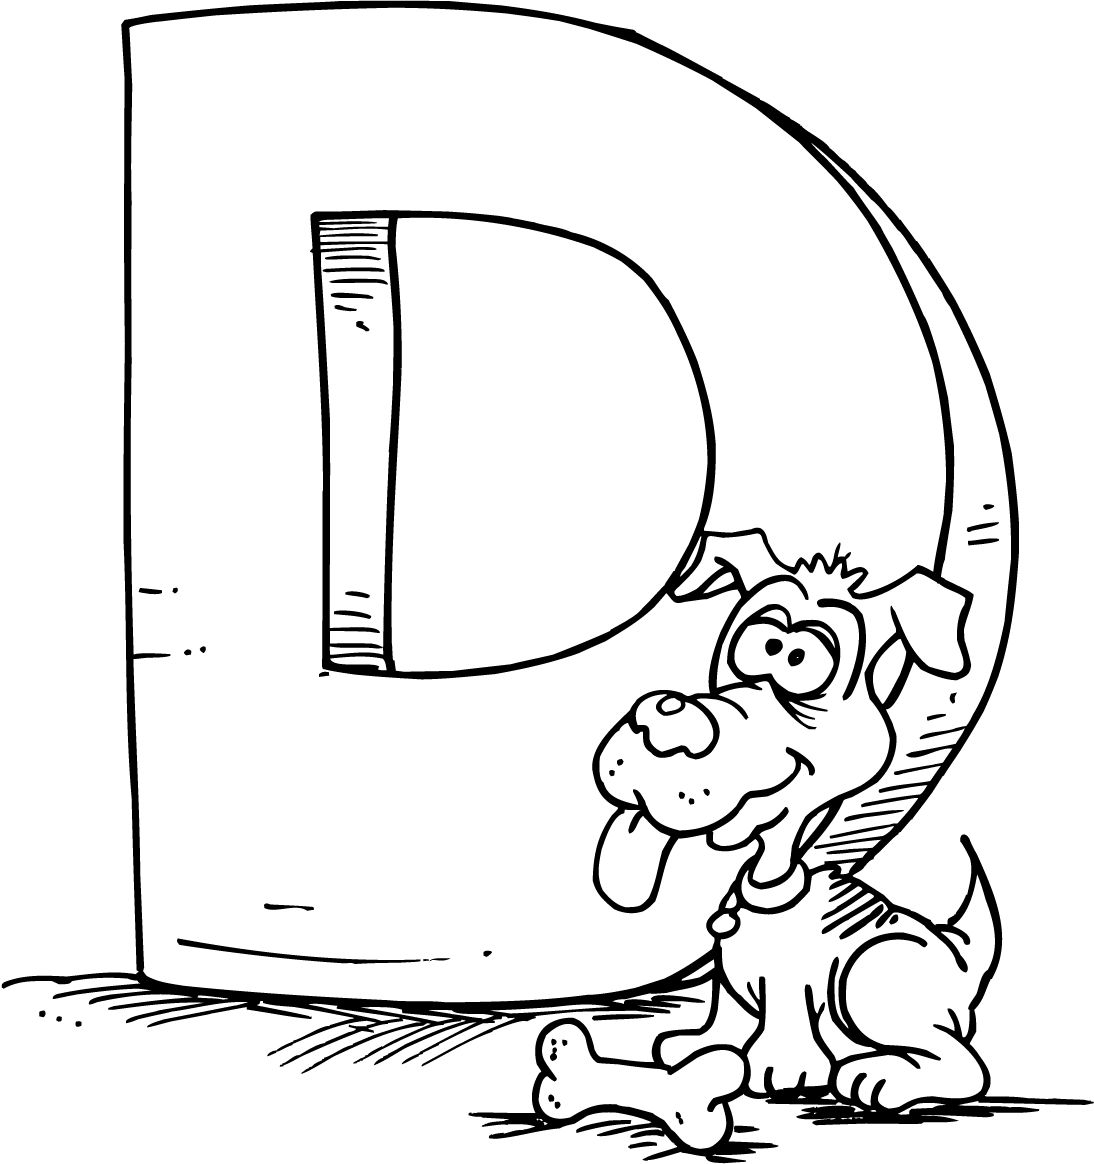 Letter D Coloring Pages Printable Sheets For Kids Get The Latest Free Images Favorite To Print